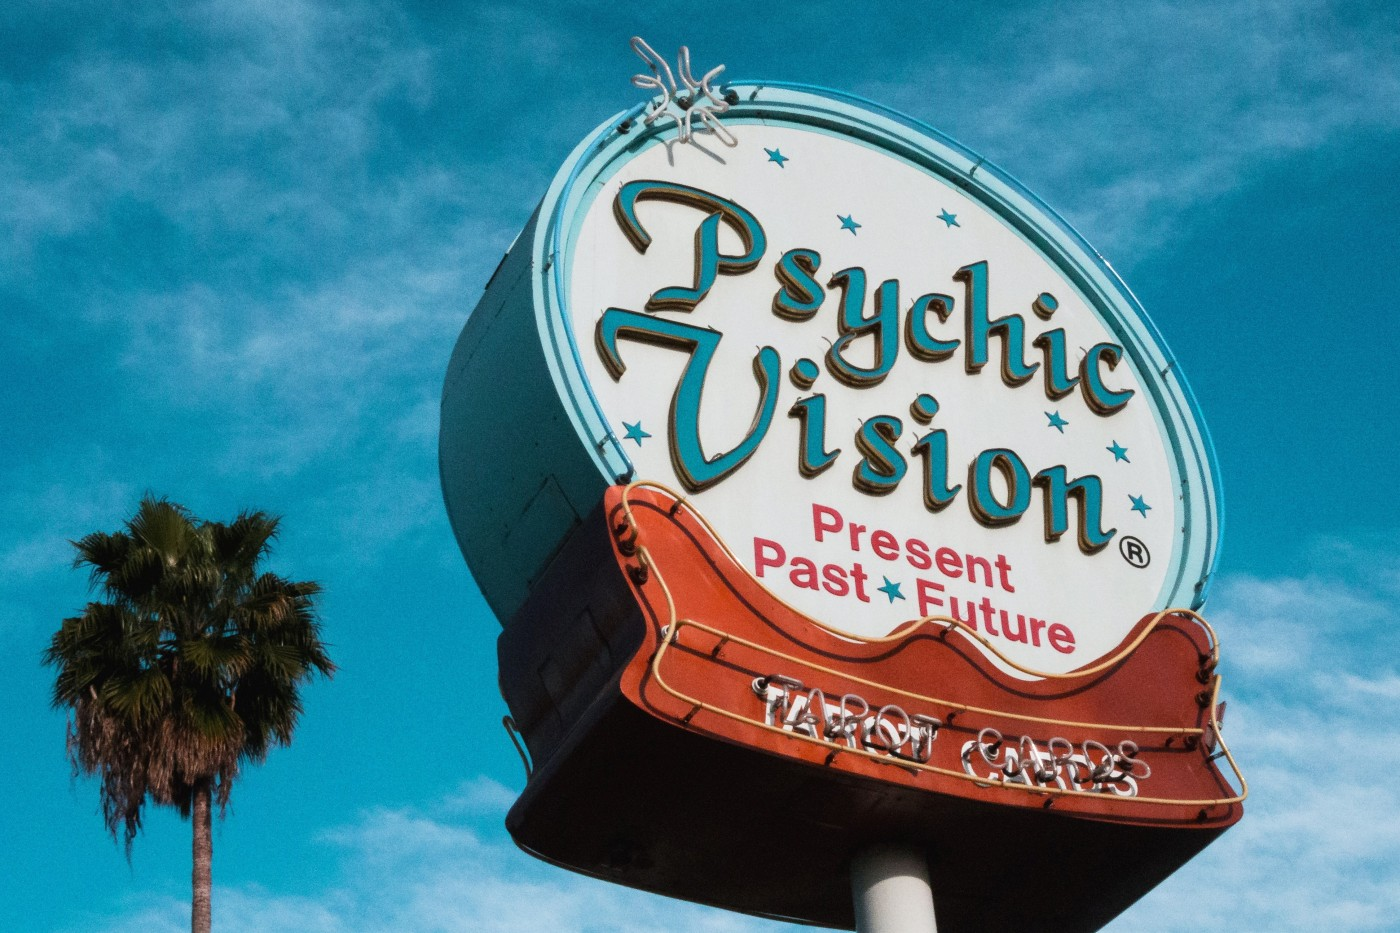 Psychic ad sign